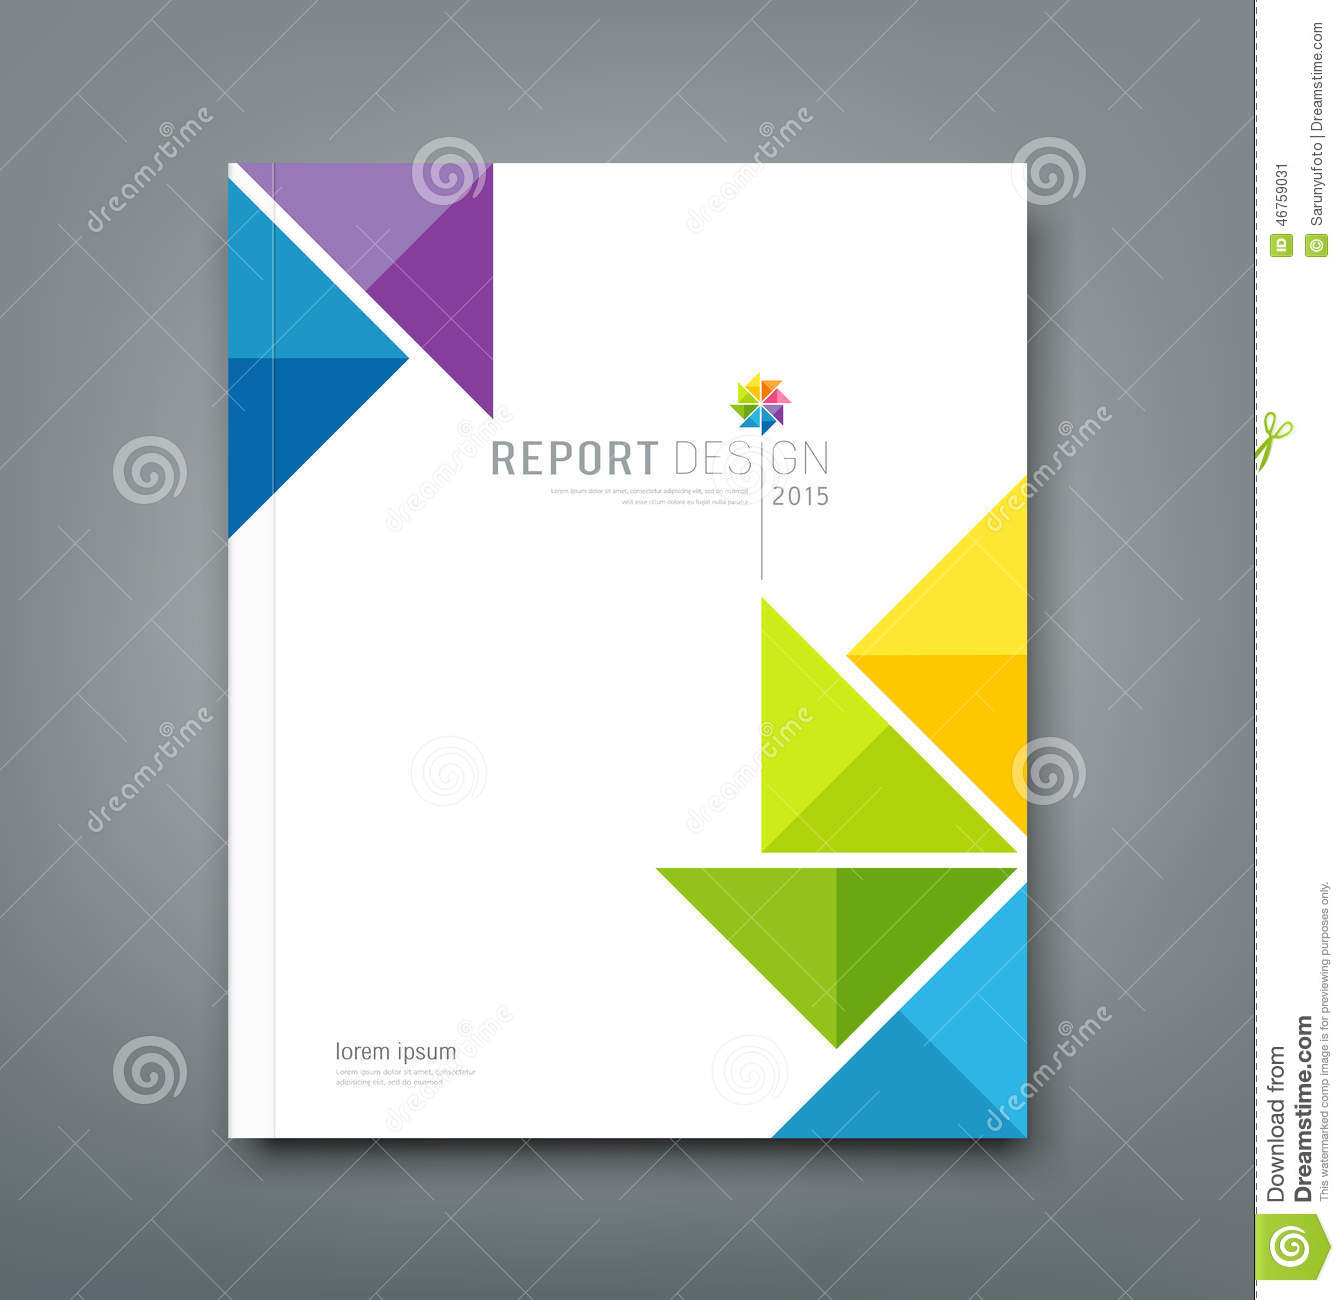 report covers